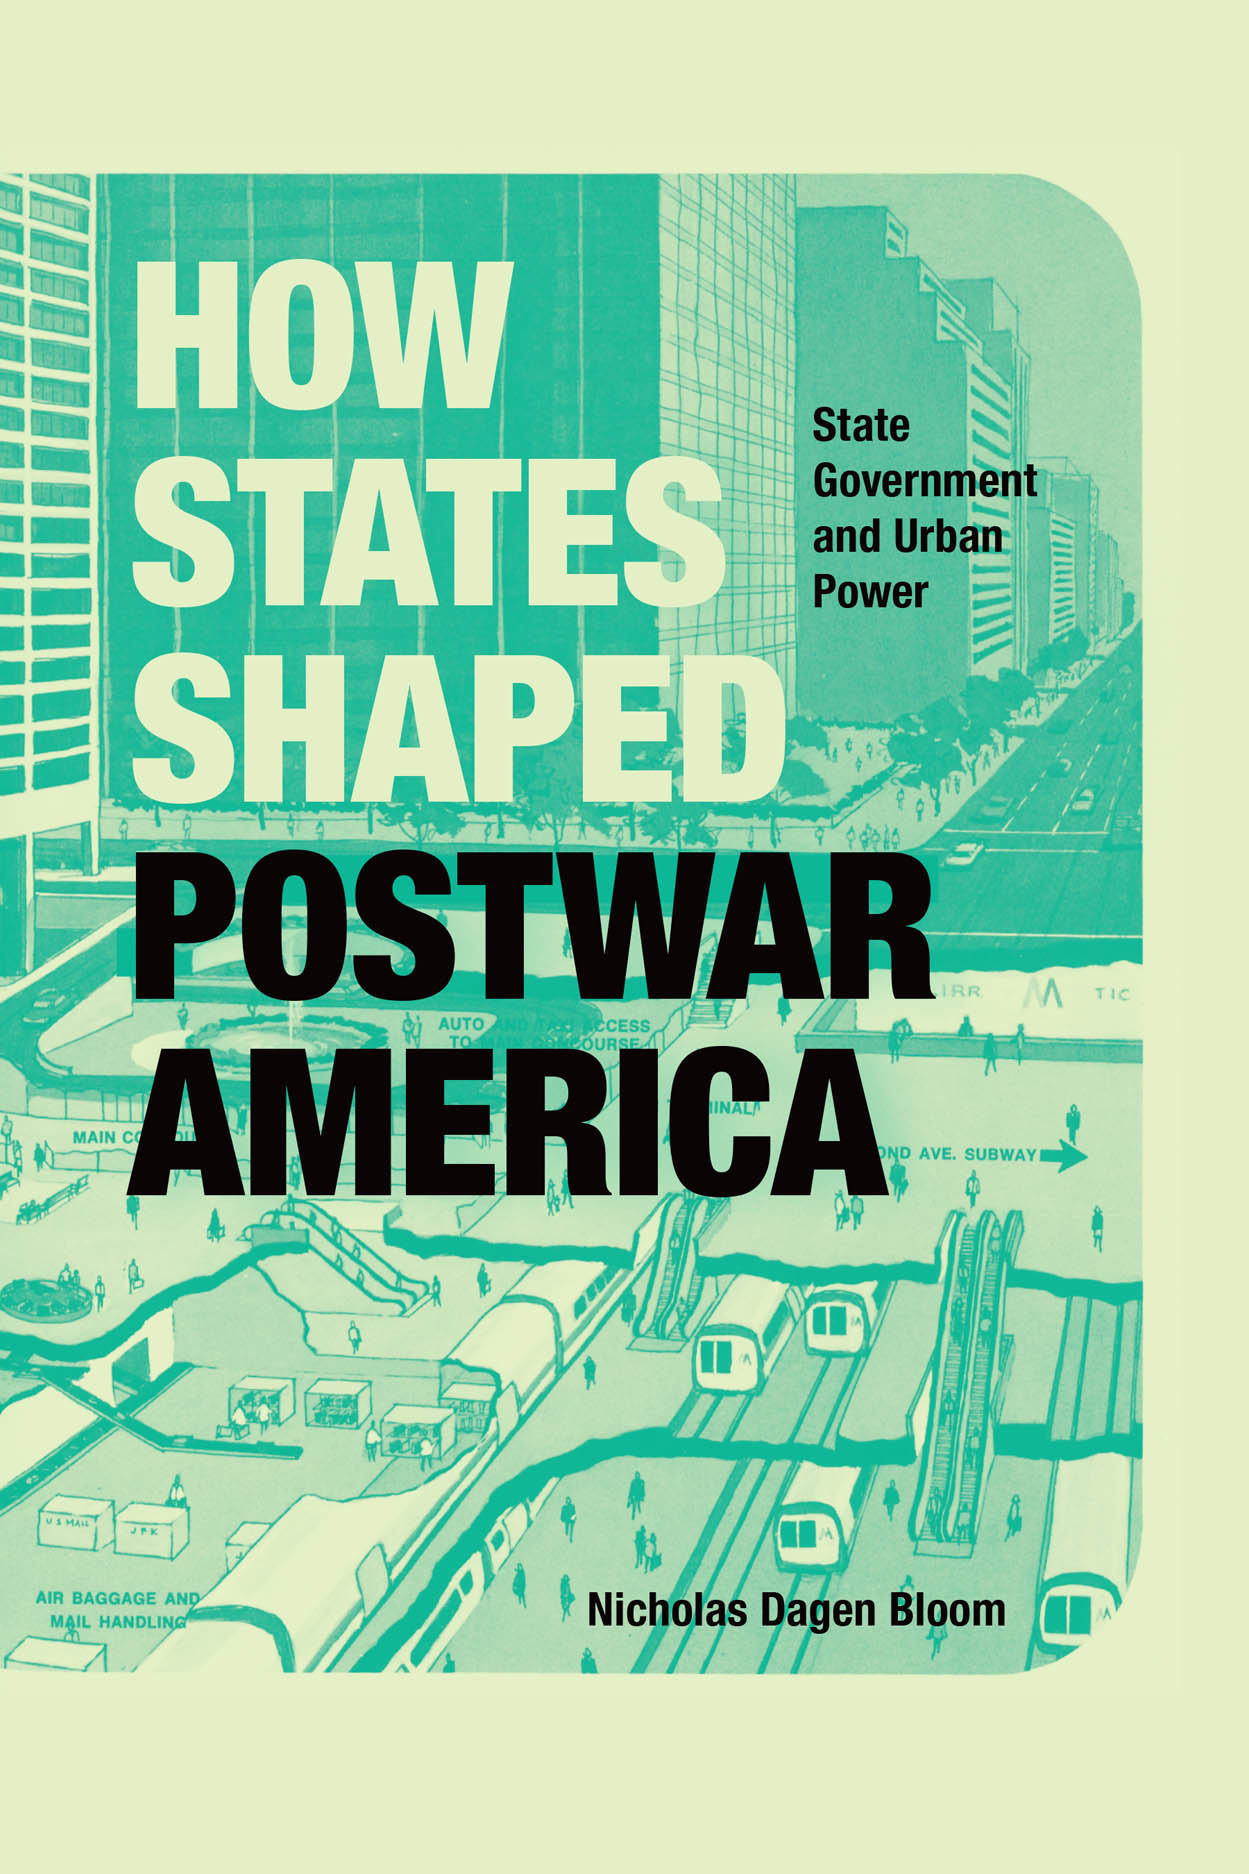 How States Shaped Postwar America: State Government and Urban Power